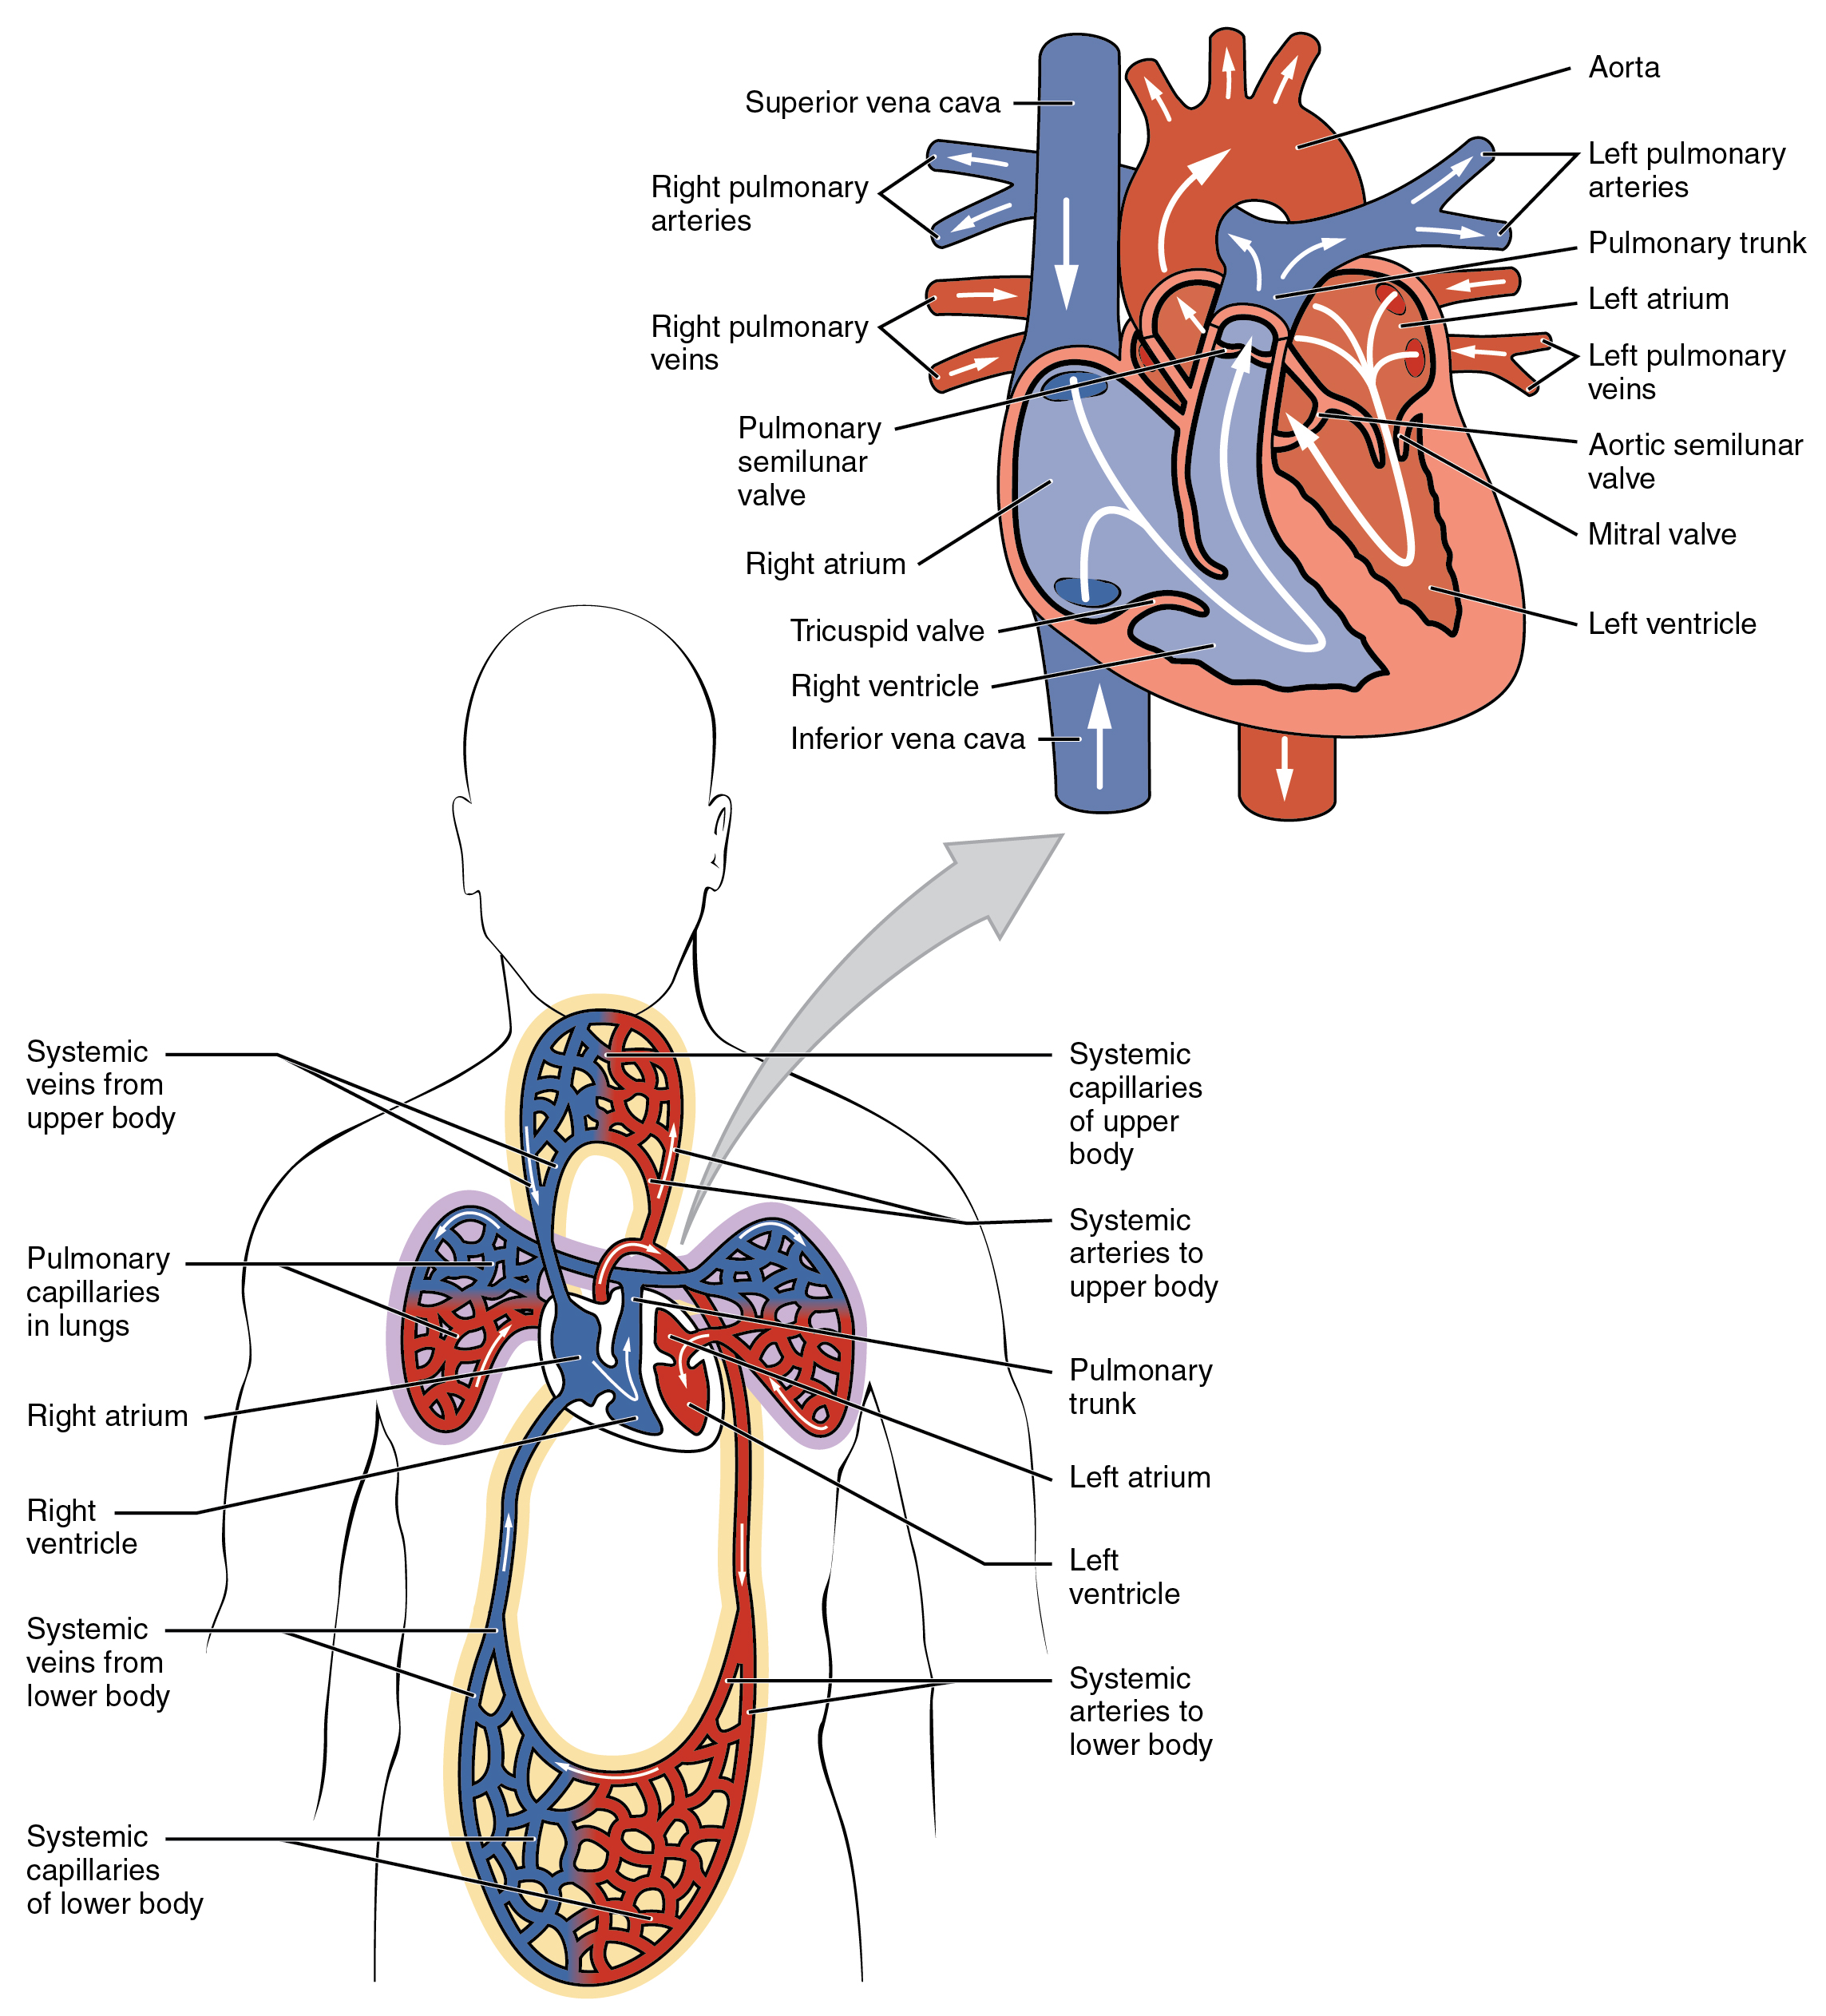 191 heart anatomy anatomy and physiology the top panel shows the human heart with the arteries and veins labeled the bottom ccuart